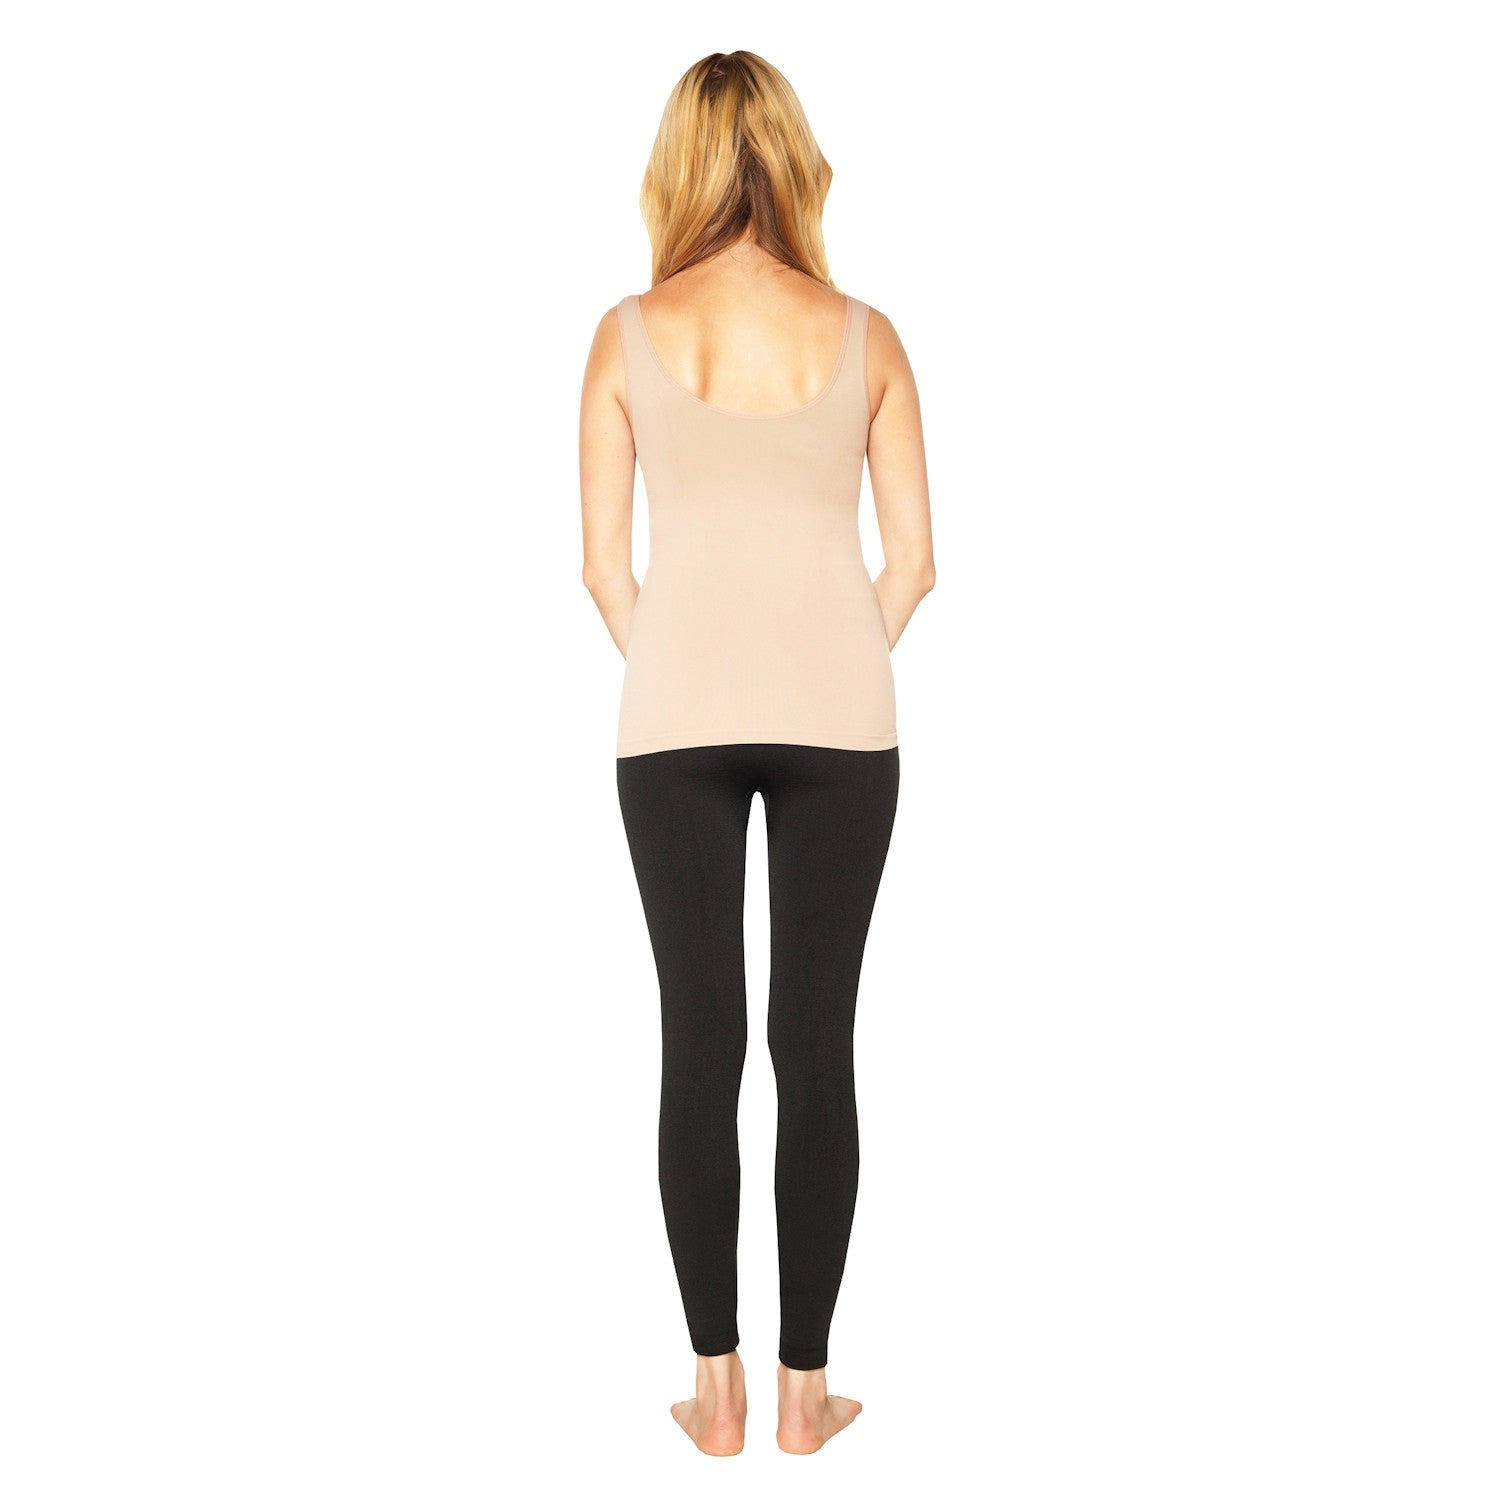 66103c0a35 Shop Ahh by Rhonda Shear Women s Seamless Shaping Tank Top with Built-In  Shelf Bra - On Sale - Free Shipping On Orders Over  45 - Overstock -  20487475